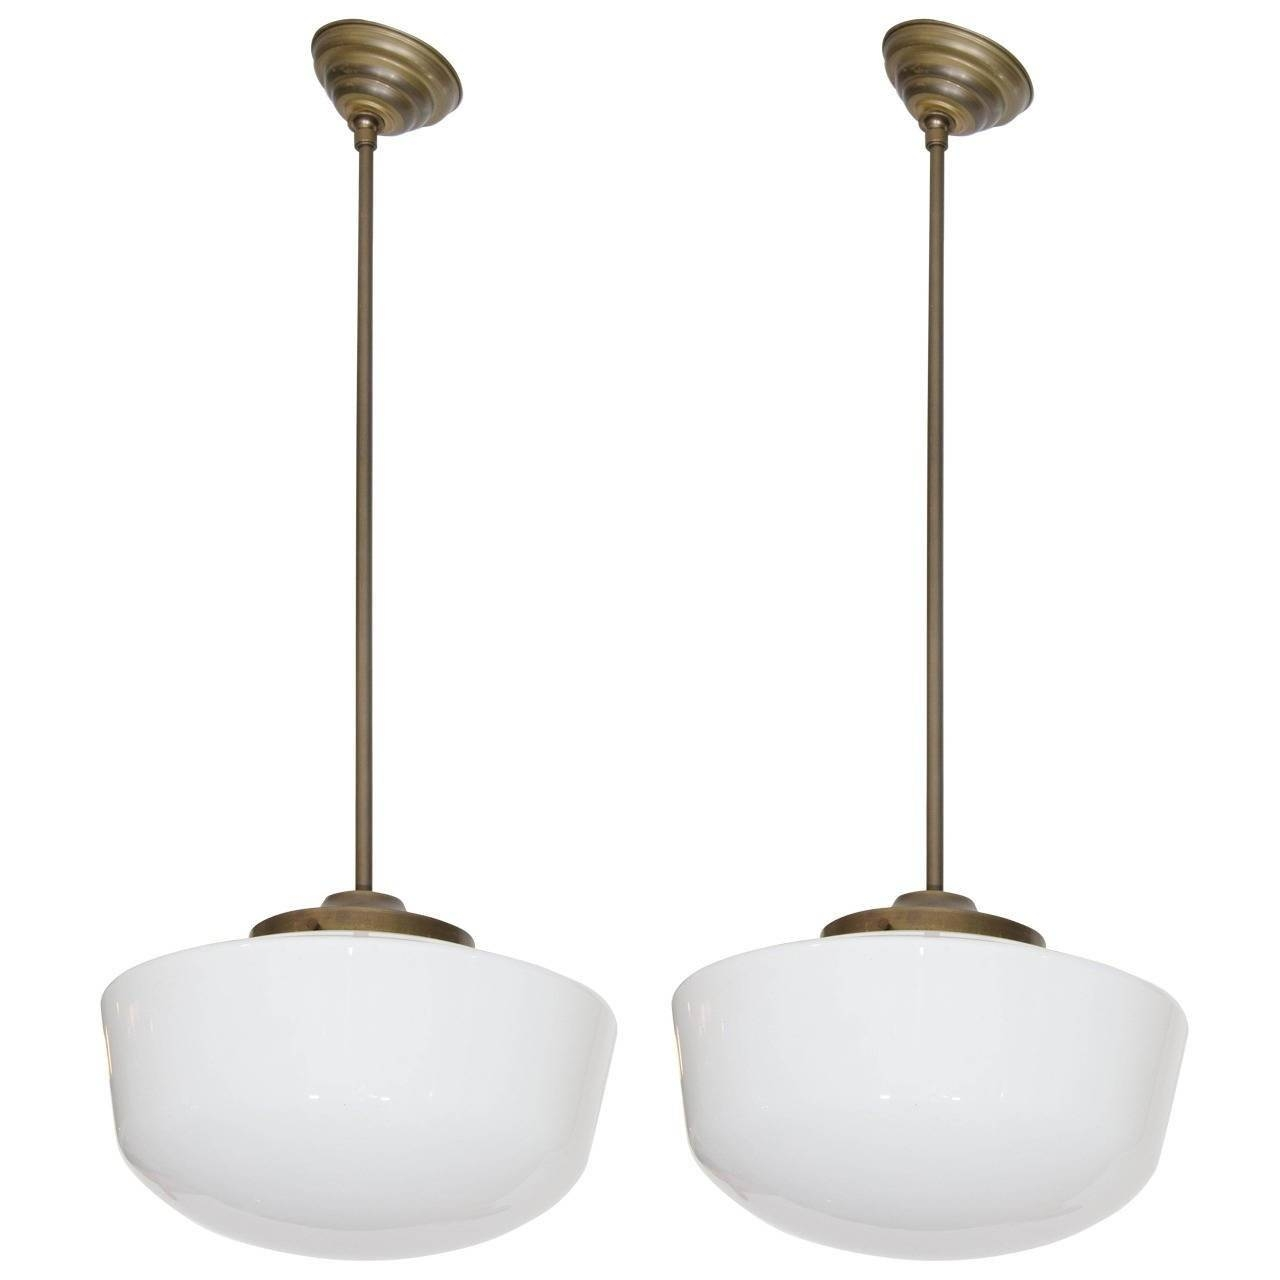 Milk Glass Chandeliers And Pendants - 118 For Sale At 1Stdibs within Milk Glass Pendants (Image 9 of 15)